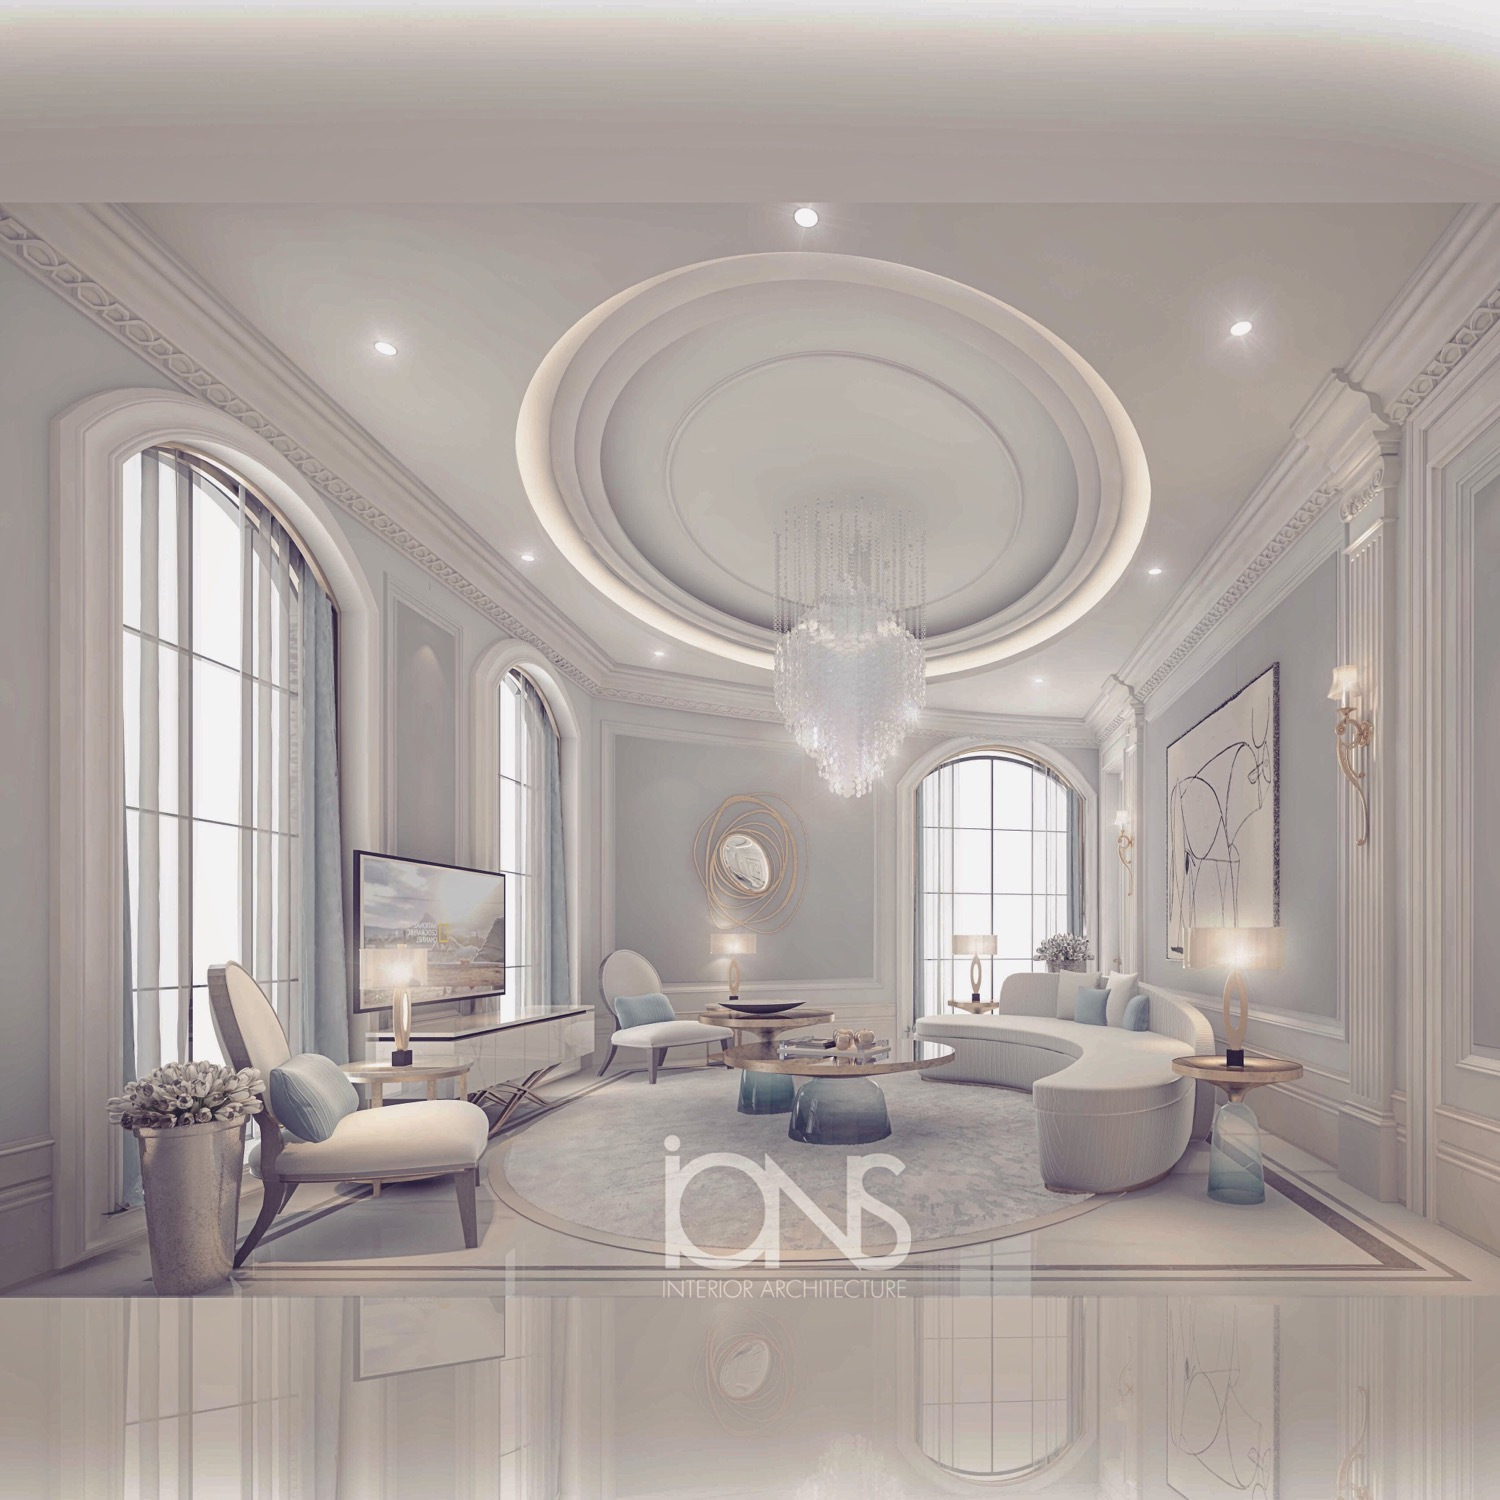 Ions Interior Design Dubai ions design | interior design company dubai | interior